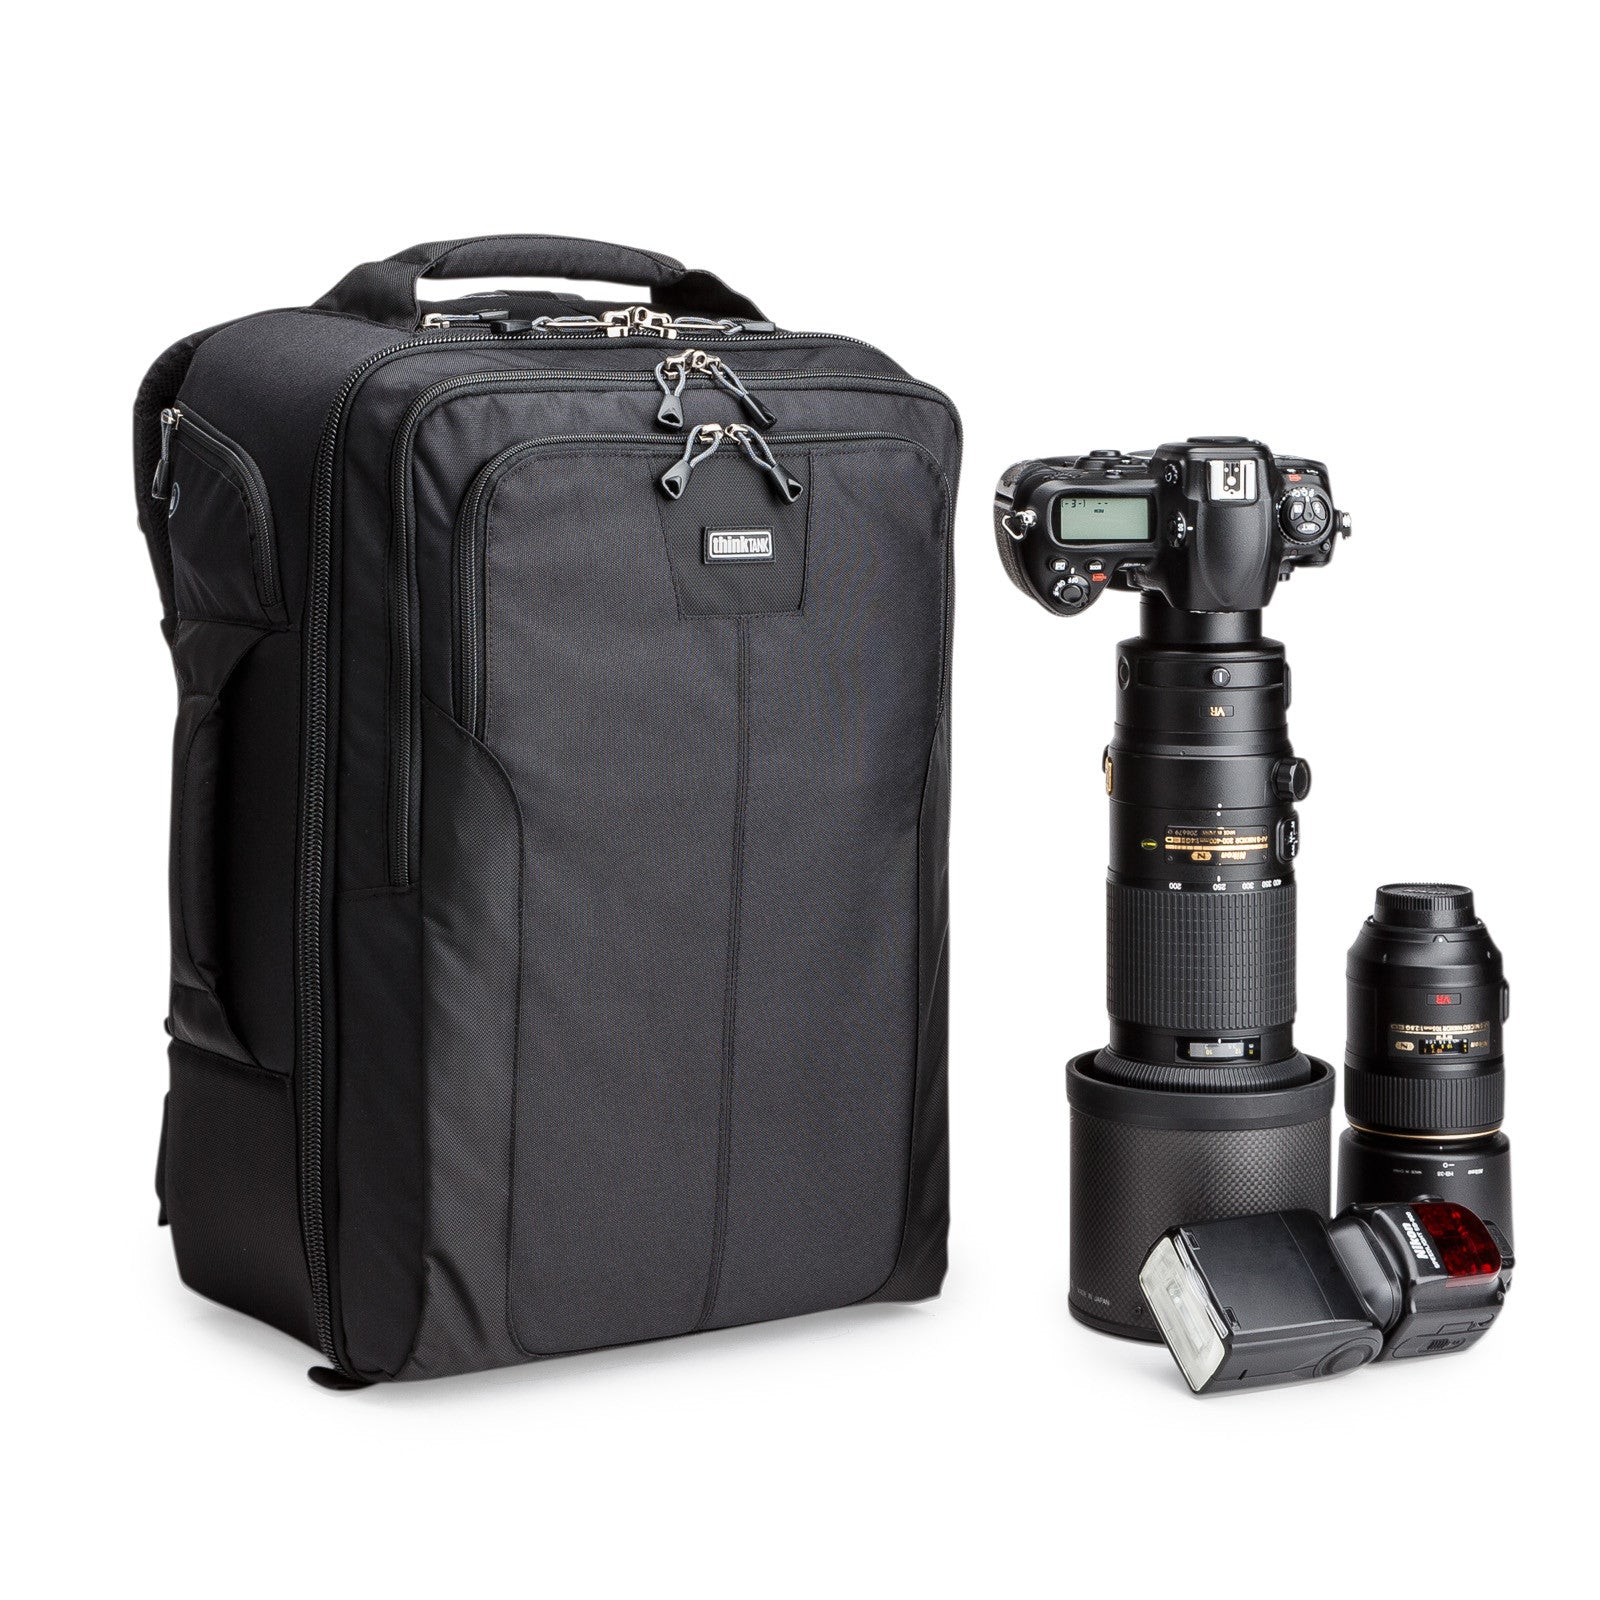 The Airport Accelerator - Our largest carry-on backpack, holds a 600mm f/4 detached from a gripped body